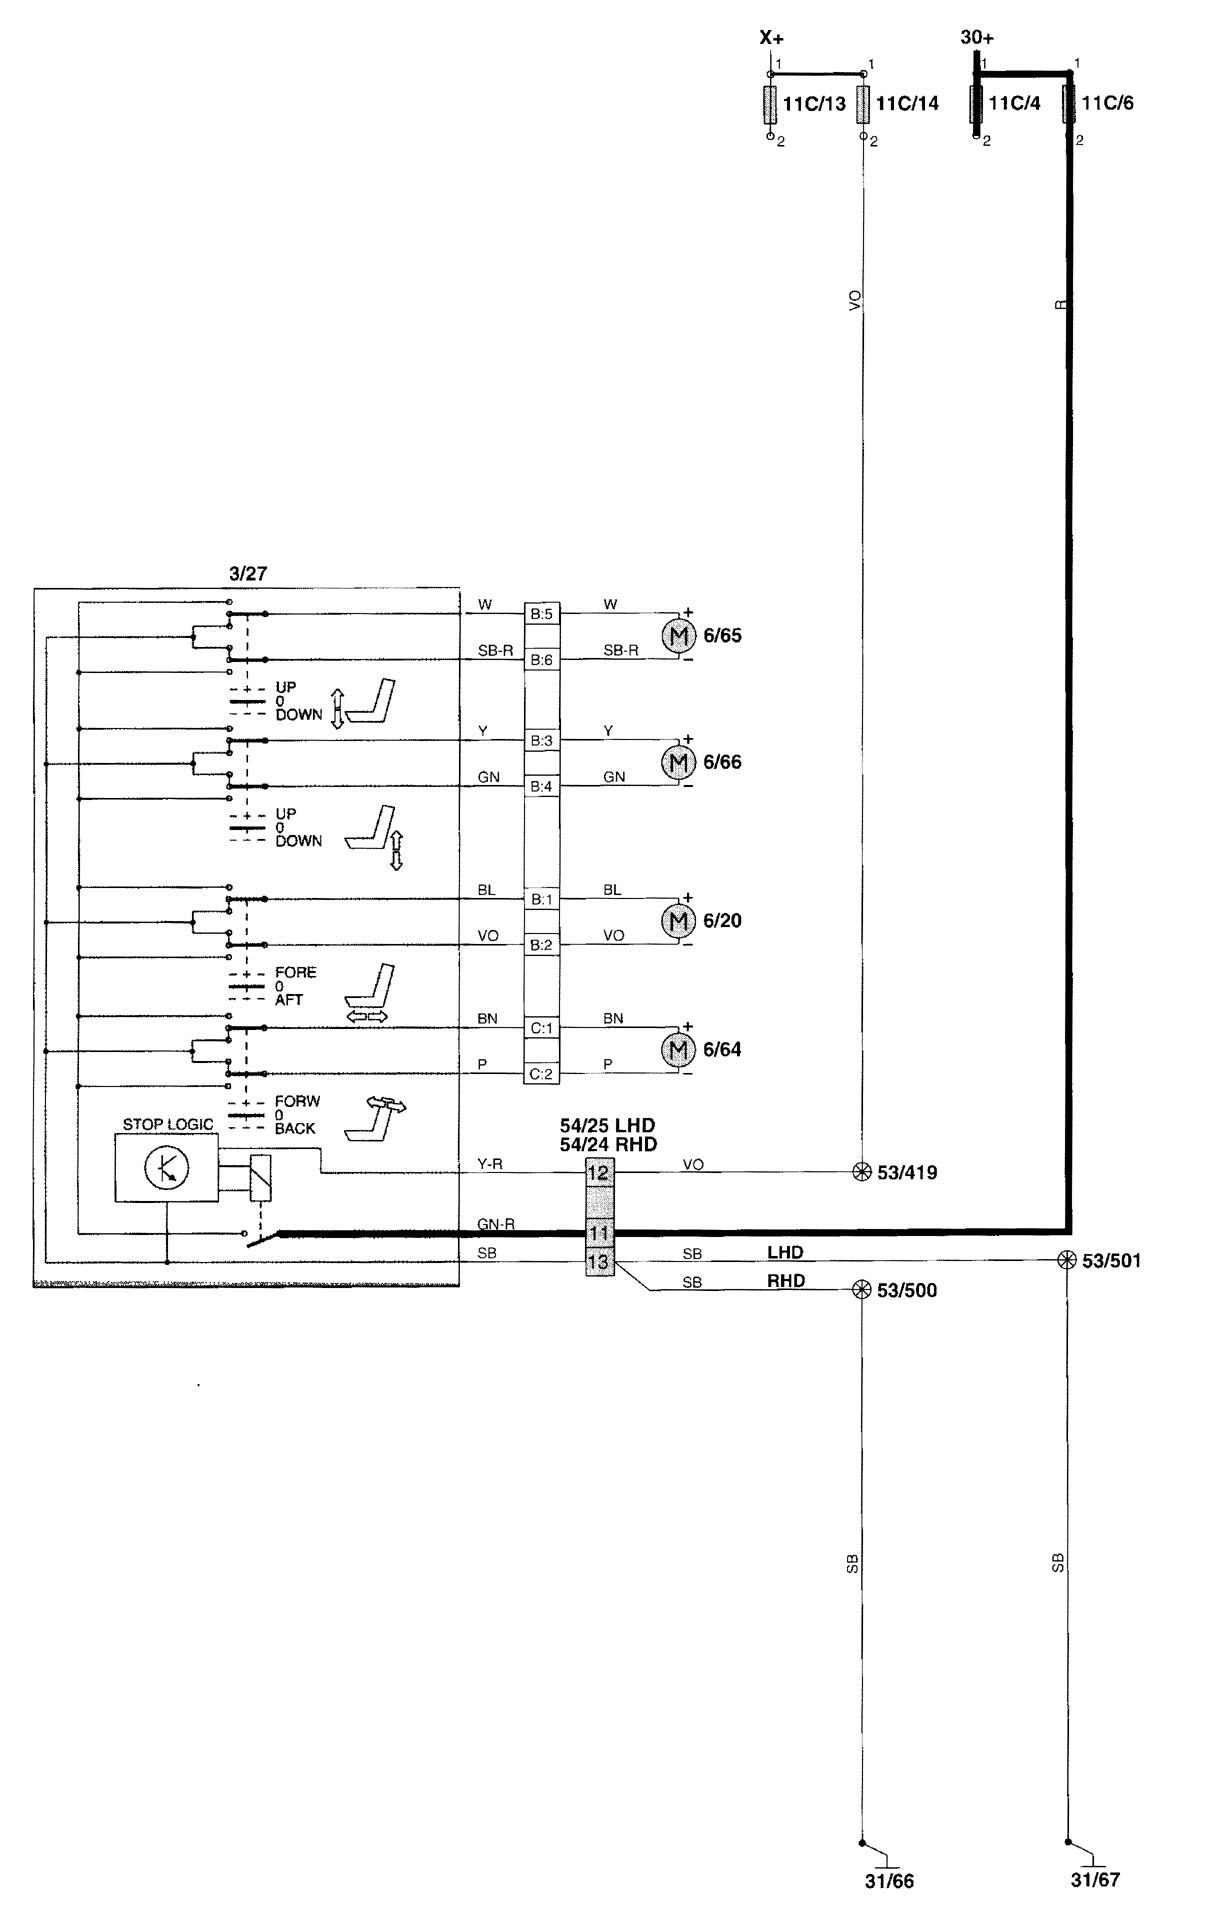 Wiring Diagram For 2000 Volvo S80 : Wire diagram f ford diesel engine